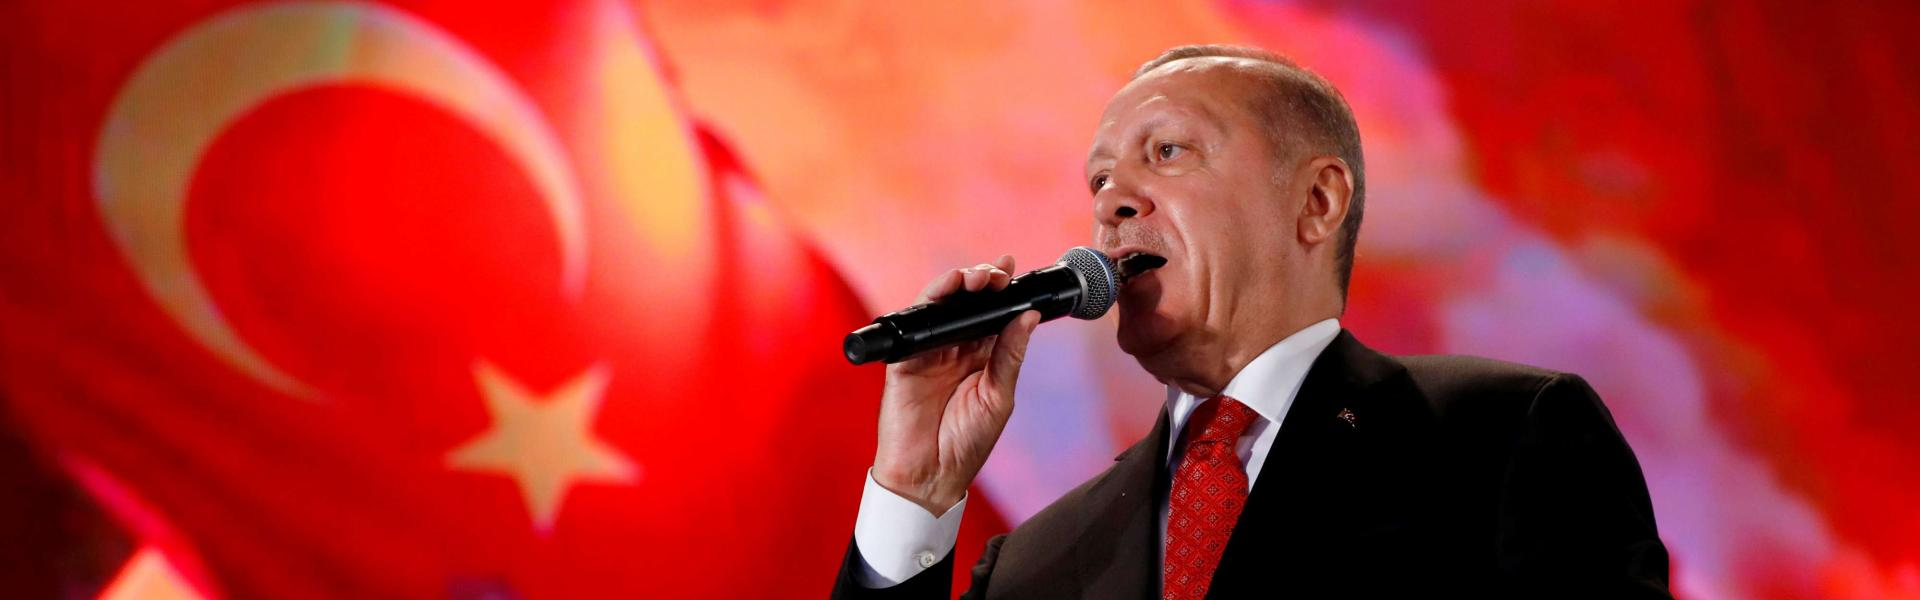 Turkish President Tayyip Erdogan addresses his supporters during a ceremony marking the third anniversary of the attempted coup at Ataturk Airport in Istanbul, Turkey, July 15, 2019. REUTERS/Murad Sezer